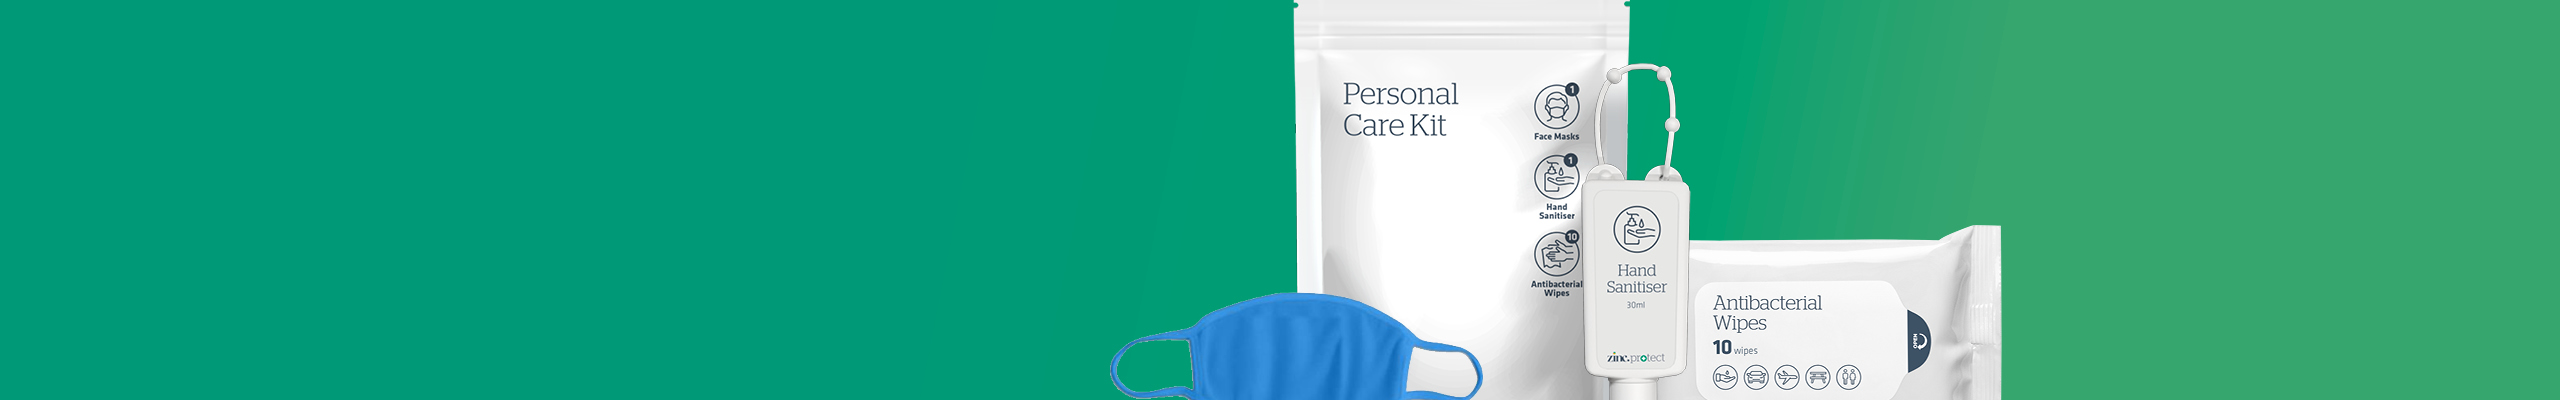 Personal Care Kit A